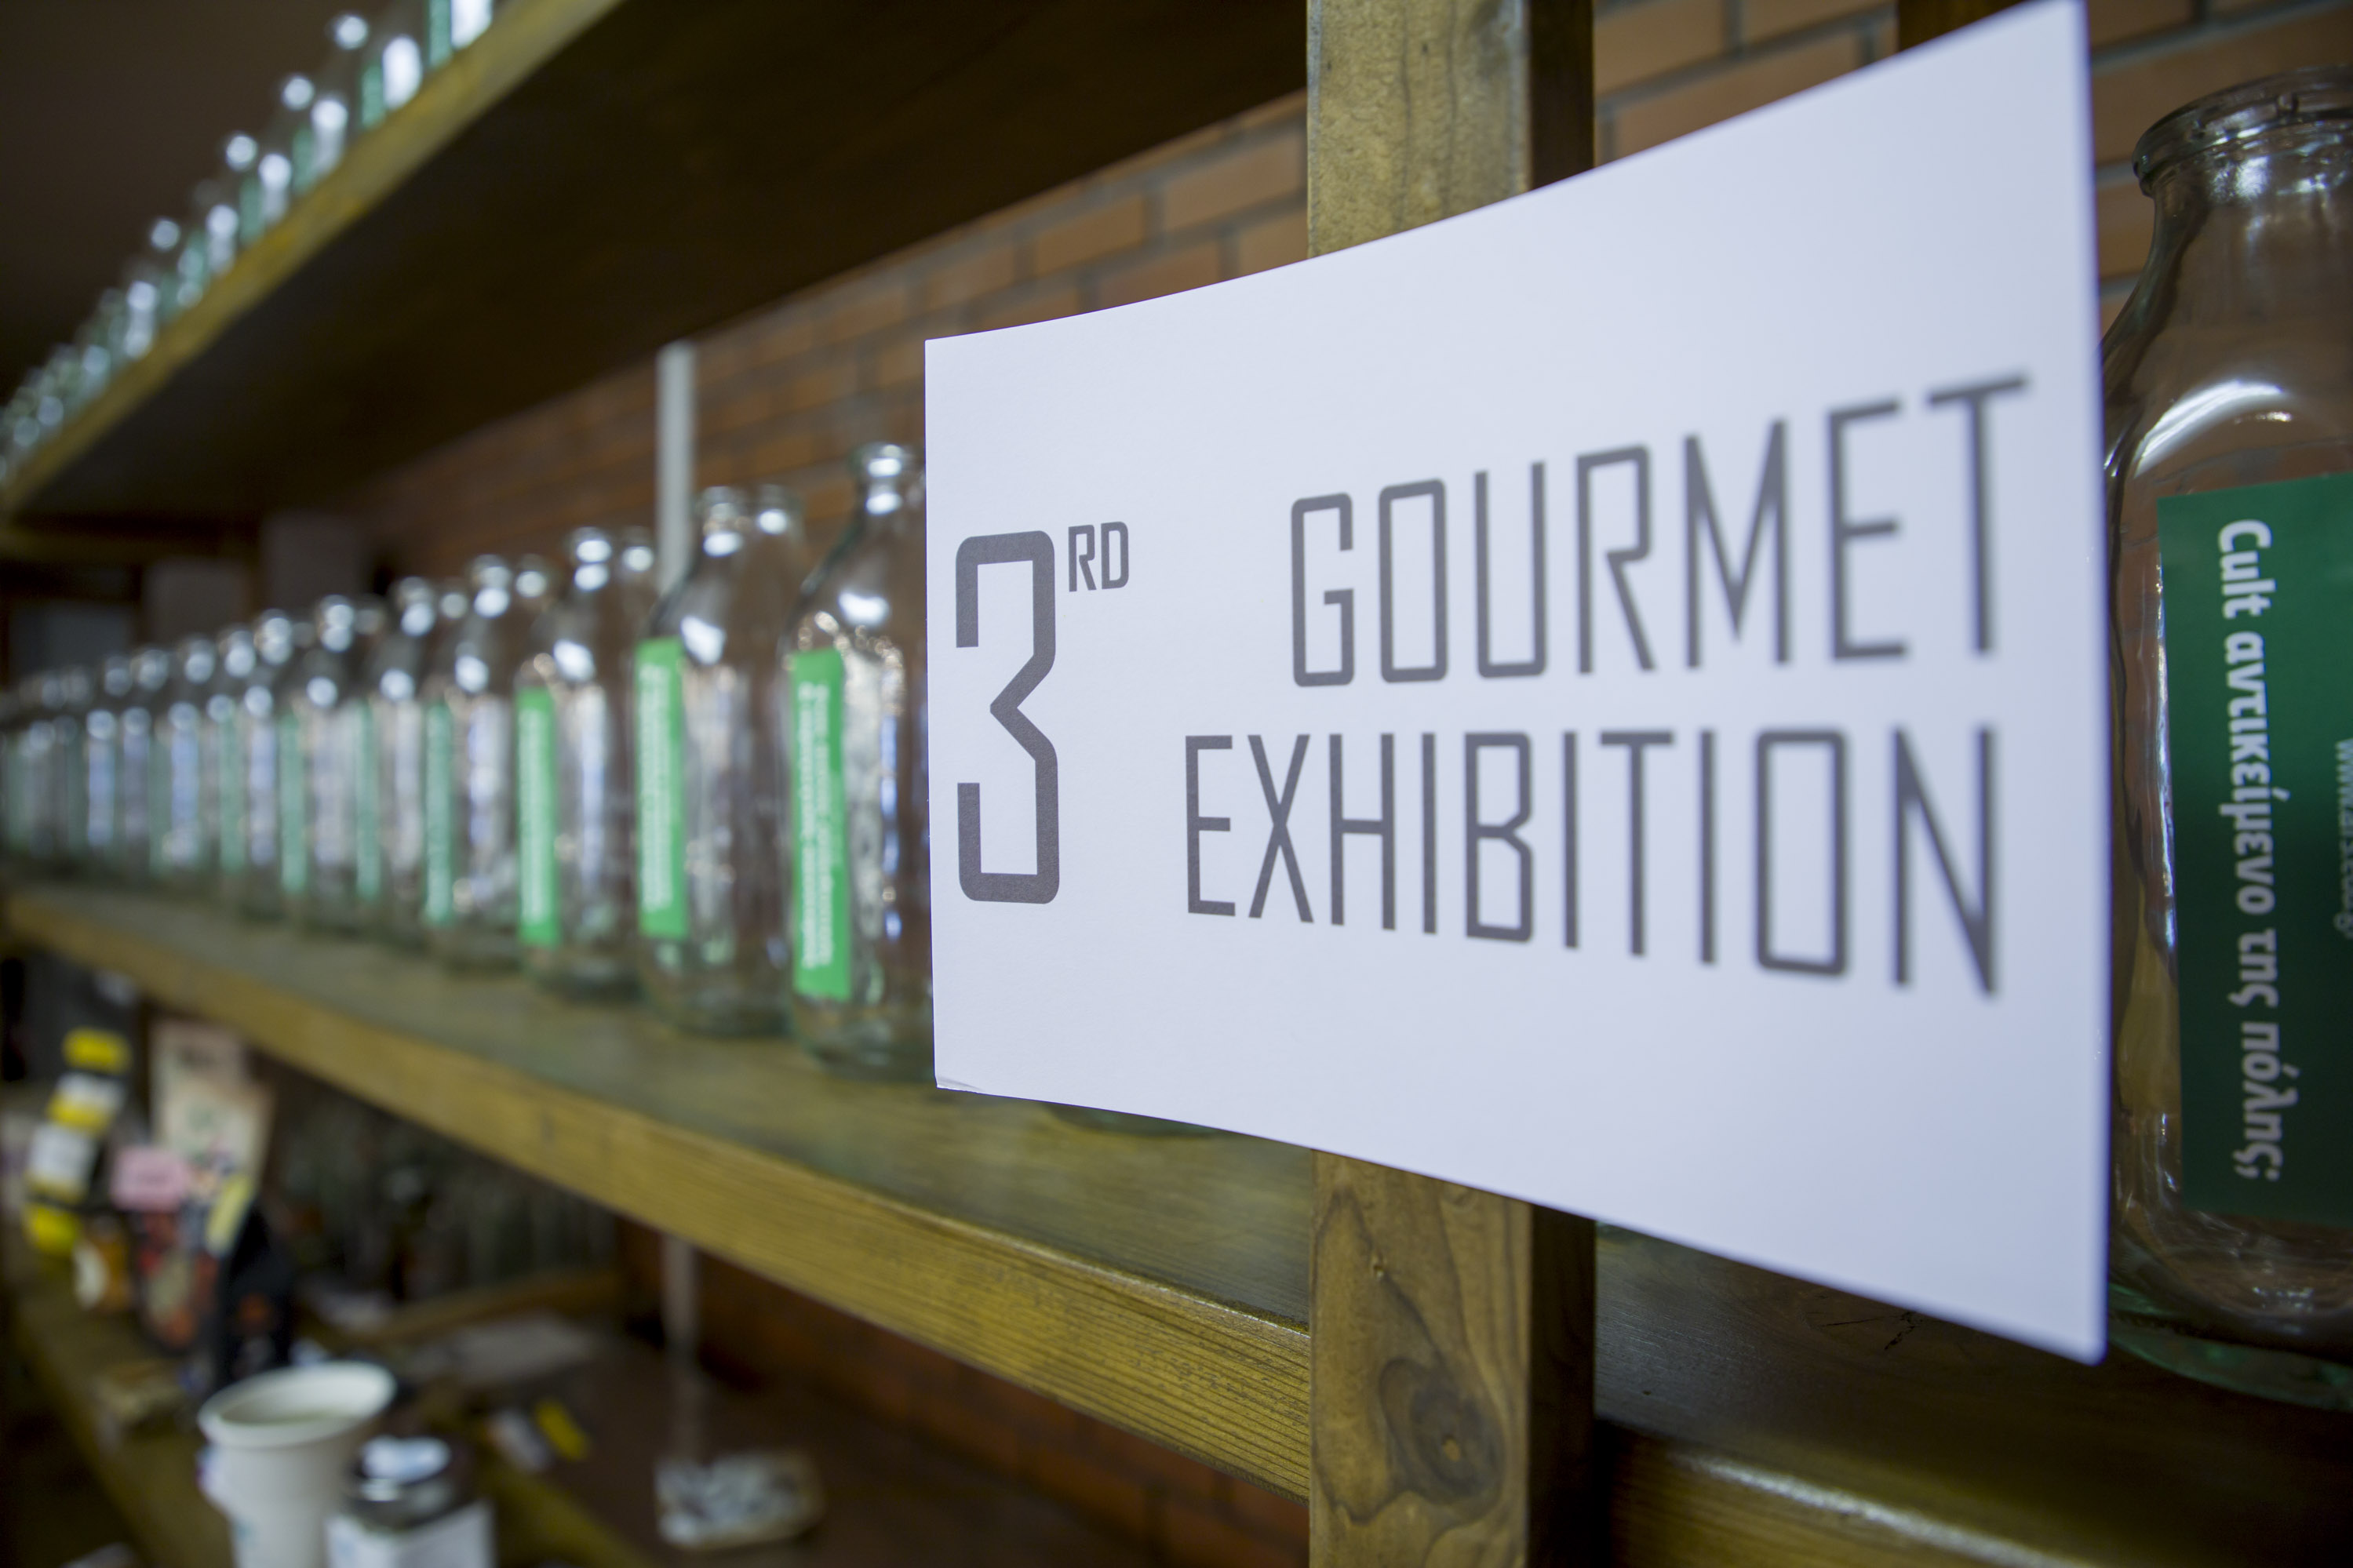 You are currently viewing Στην 3η Gourmet Exhibition ο παραγωγός είχε τον πρώτο ρόλο και λόγο.